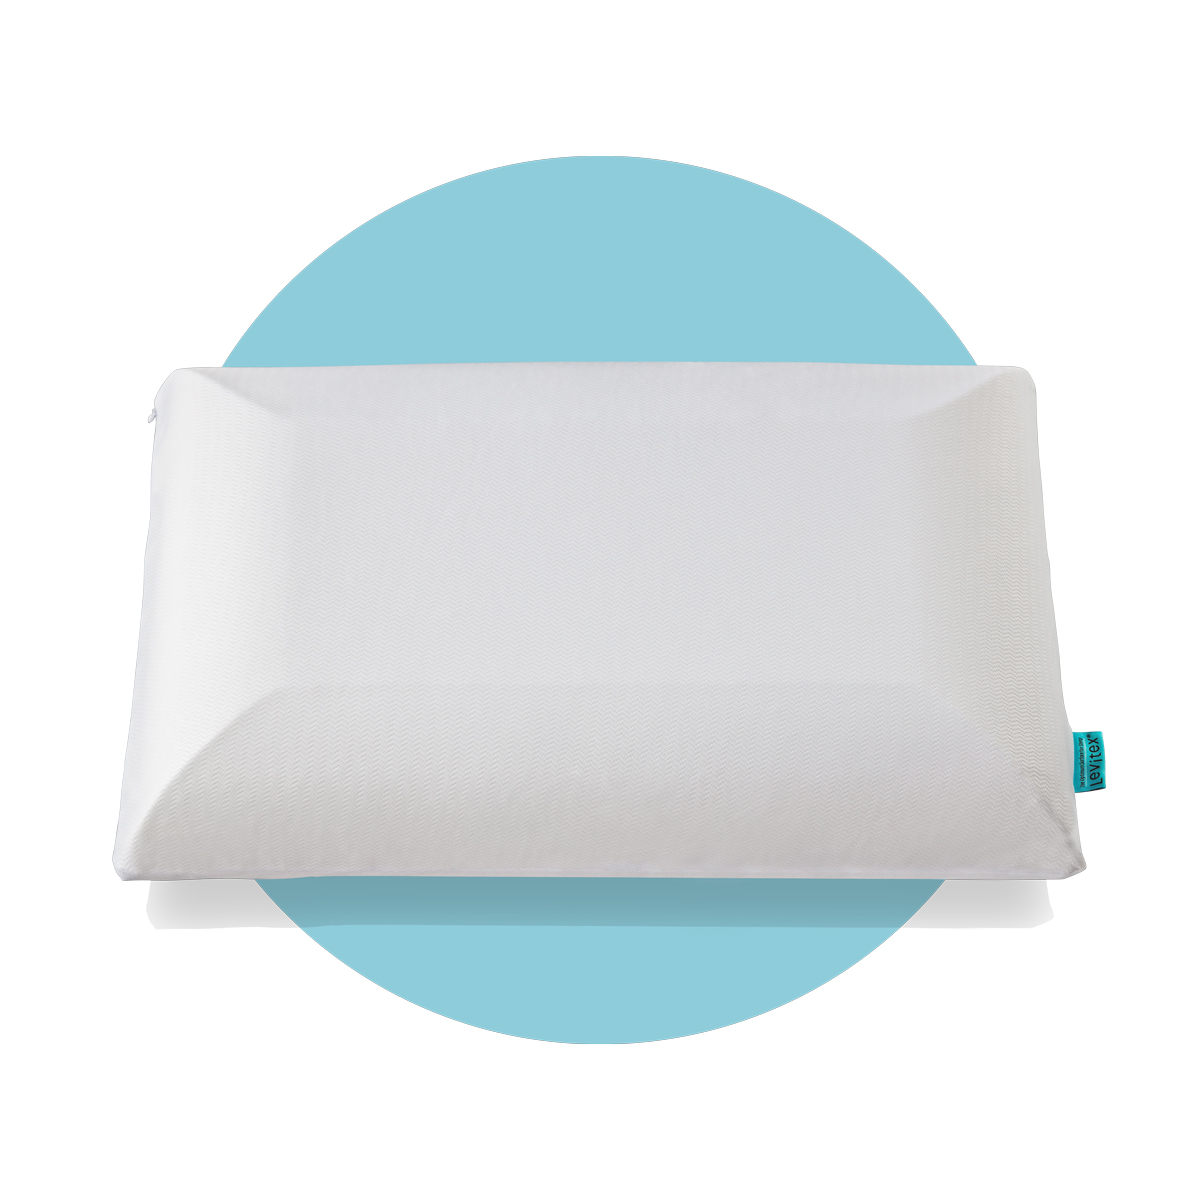 white pillow on a blue background